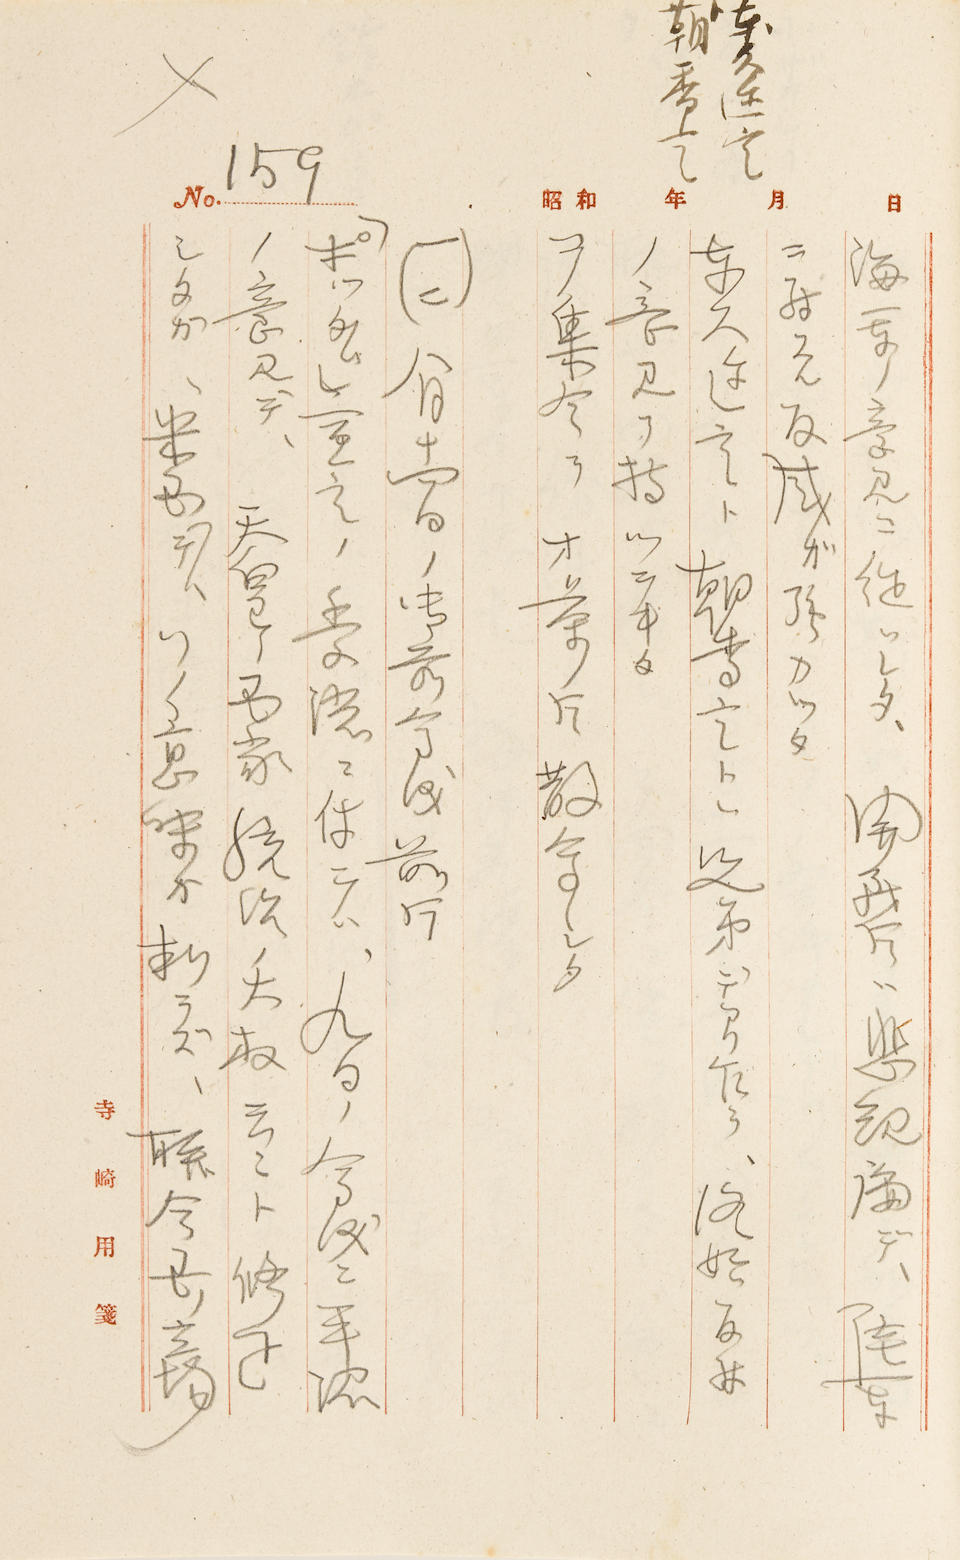 "HIROHITO, EMPEROR SHOWA. 1901-1989. Autograph Manuscript in Japanese, Showa Tenno Dokuhakuroku 昭和天皇独白録 ""The Emperor's Monologue,"" transcribed by Terasaki Hidenari,"